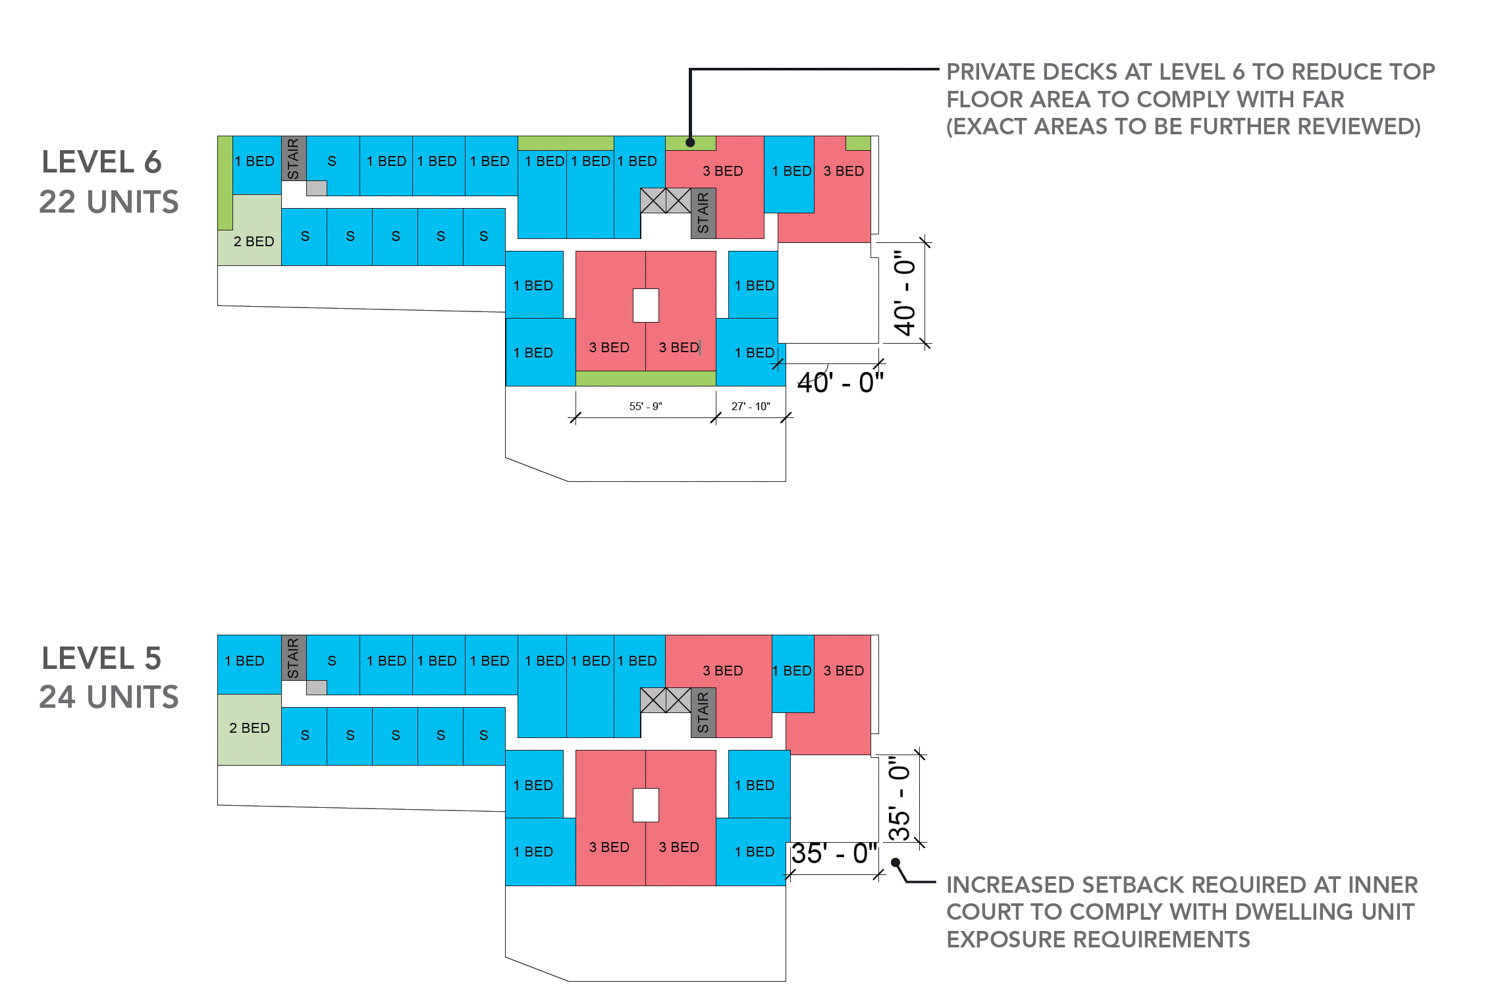 55 Francisco Street fifth and sixth level floor plans, illustration from TEF Design